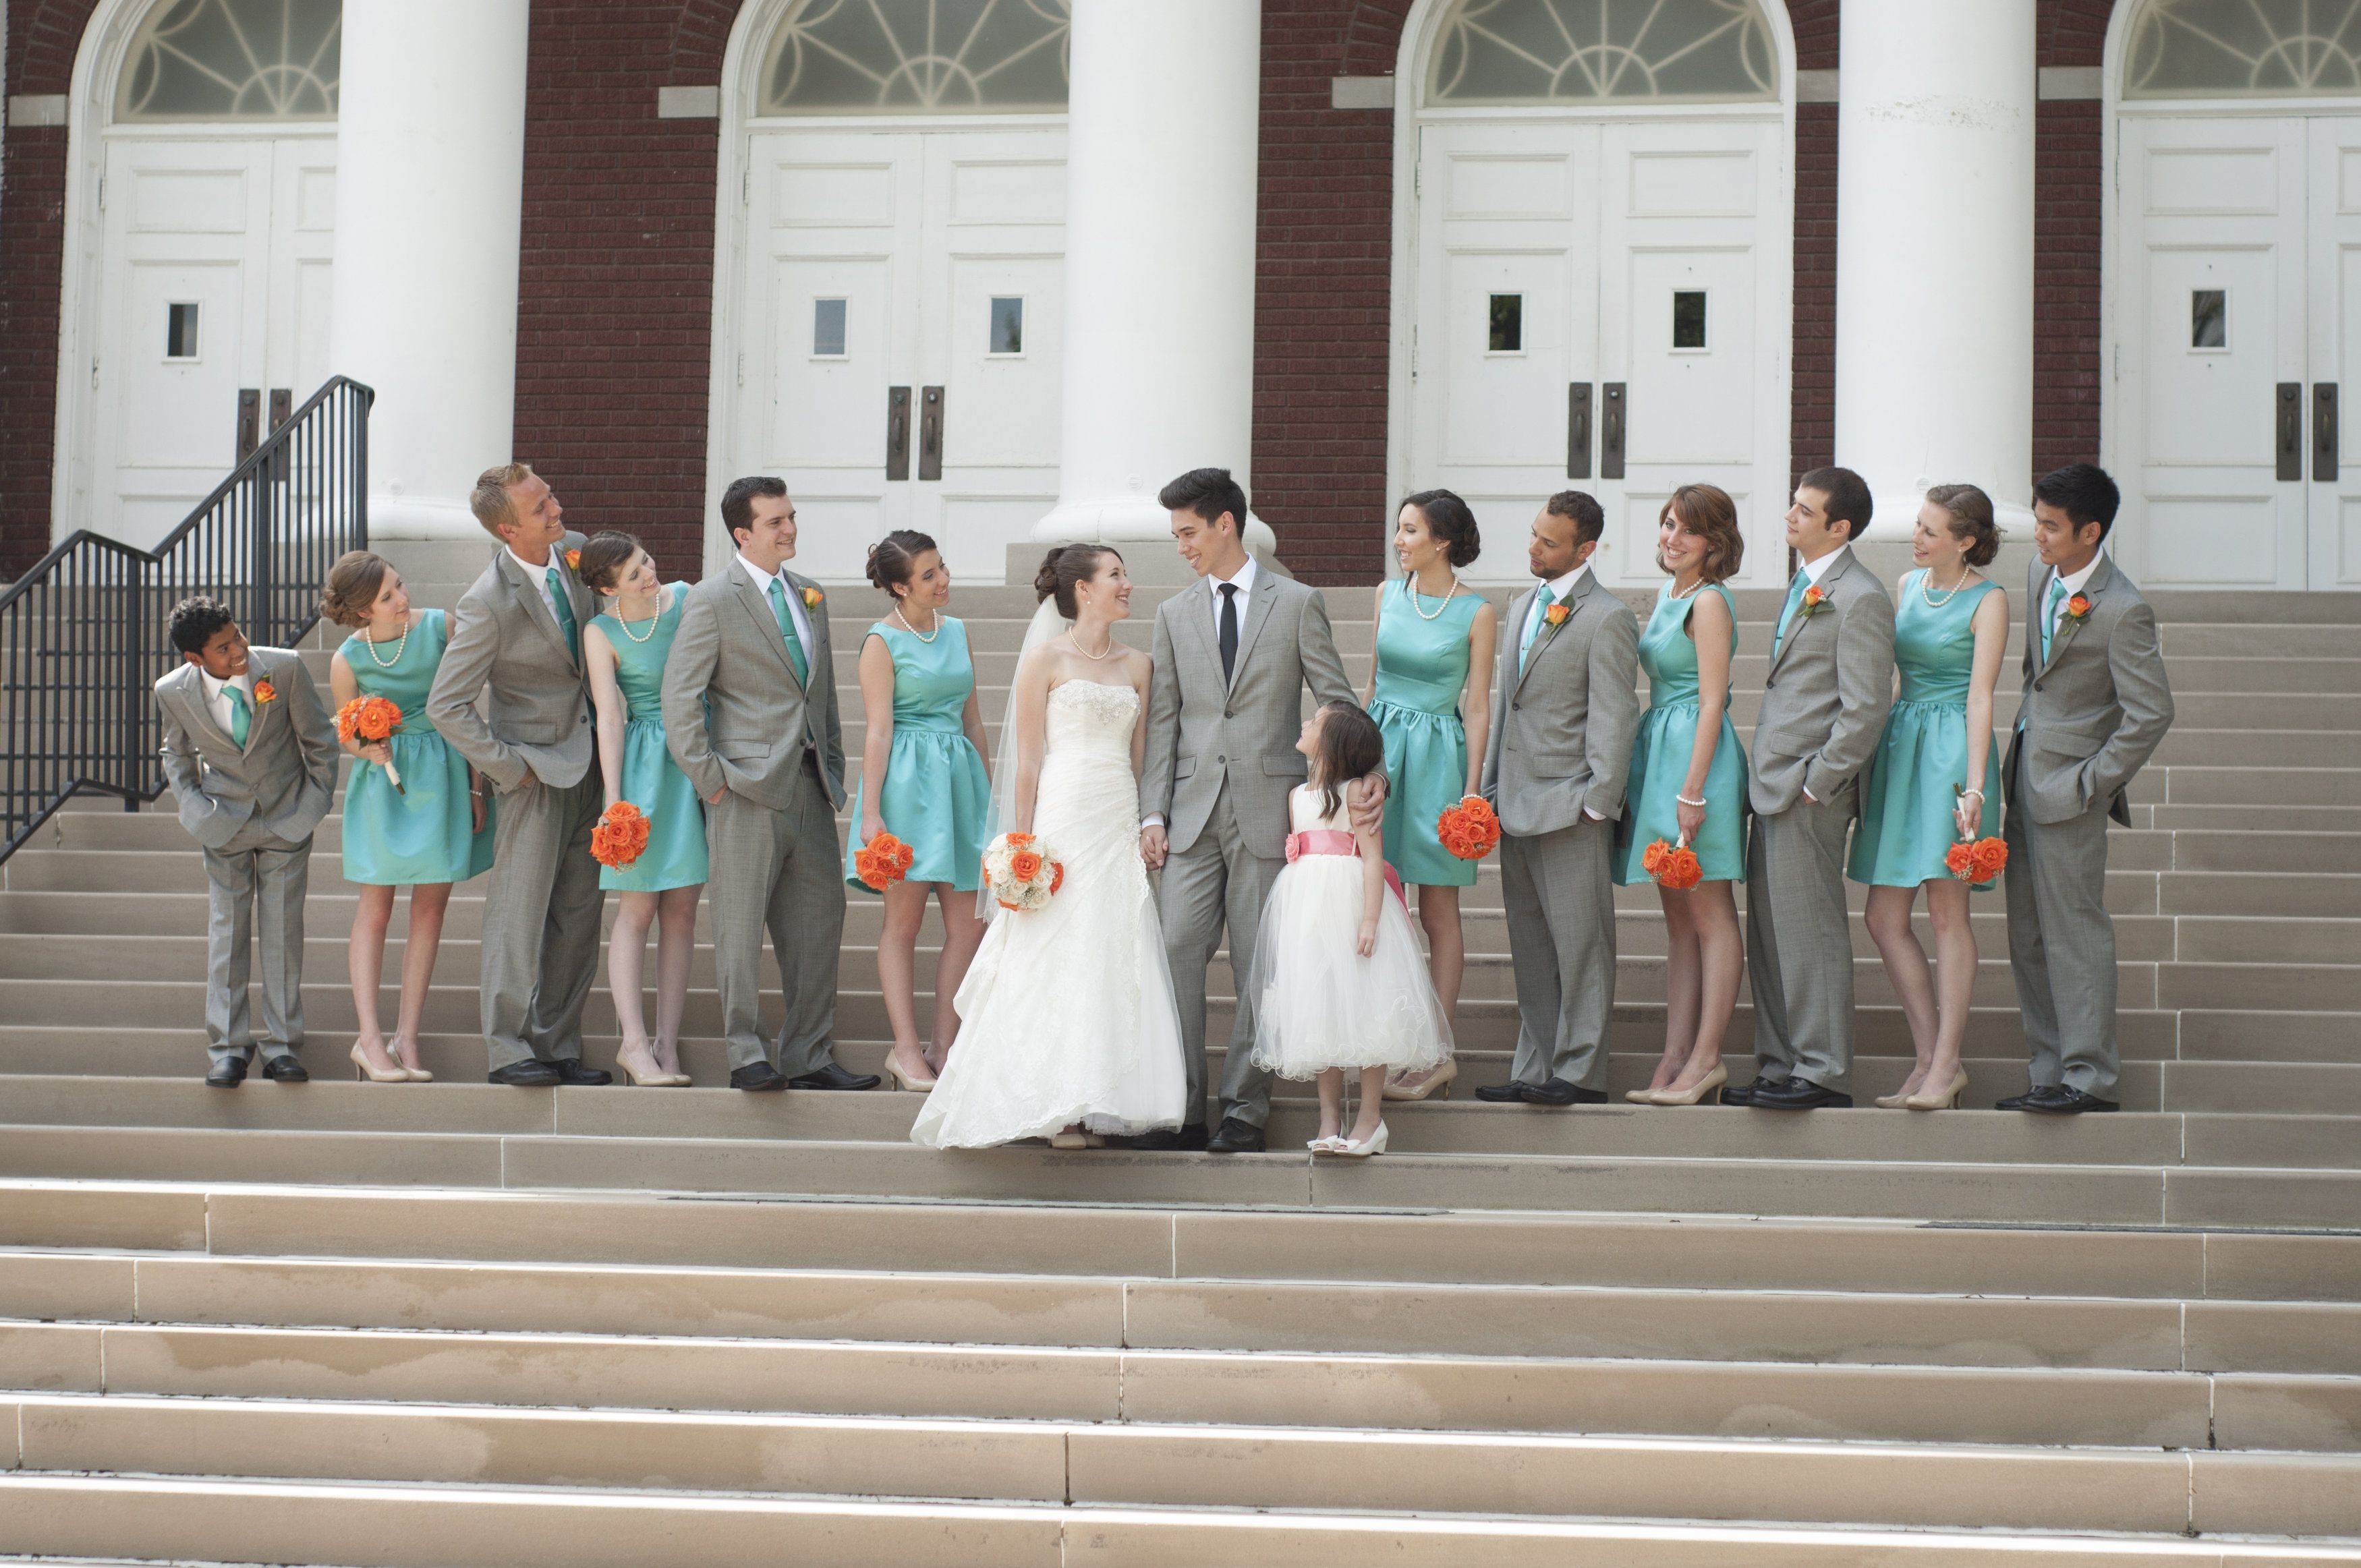 Our wedding party teal 1950s style bridesmaids dresses grey our wedding party teal 1950s style bridesmaids dresses grey suits coral orange ombrellifo Image collections